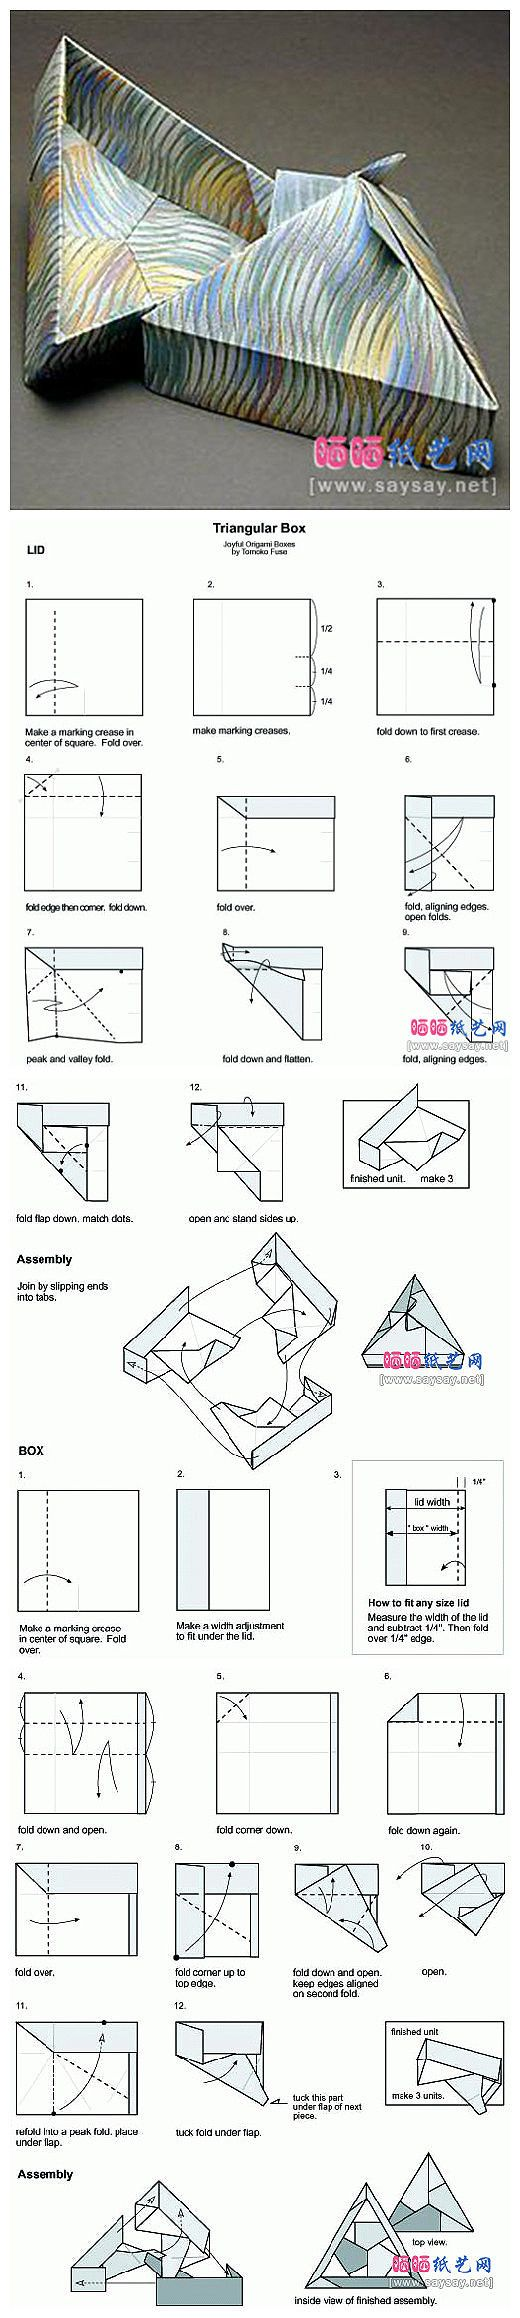 20 Best Origami Images On Pinterest Paper Folding Tomoko Fuse Hexagon Box Instructions Triangular By Diagrams